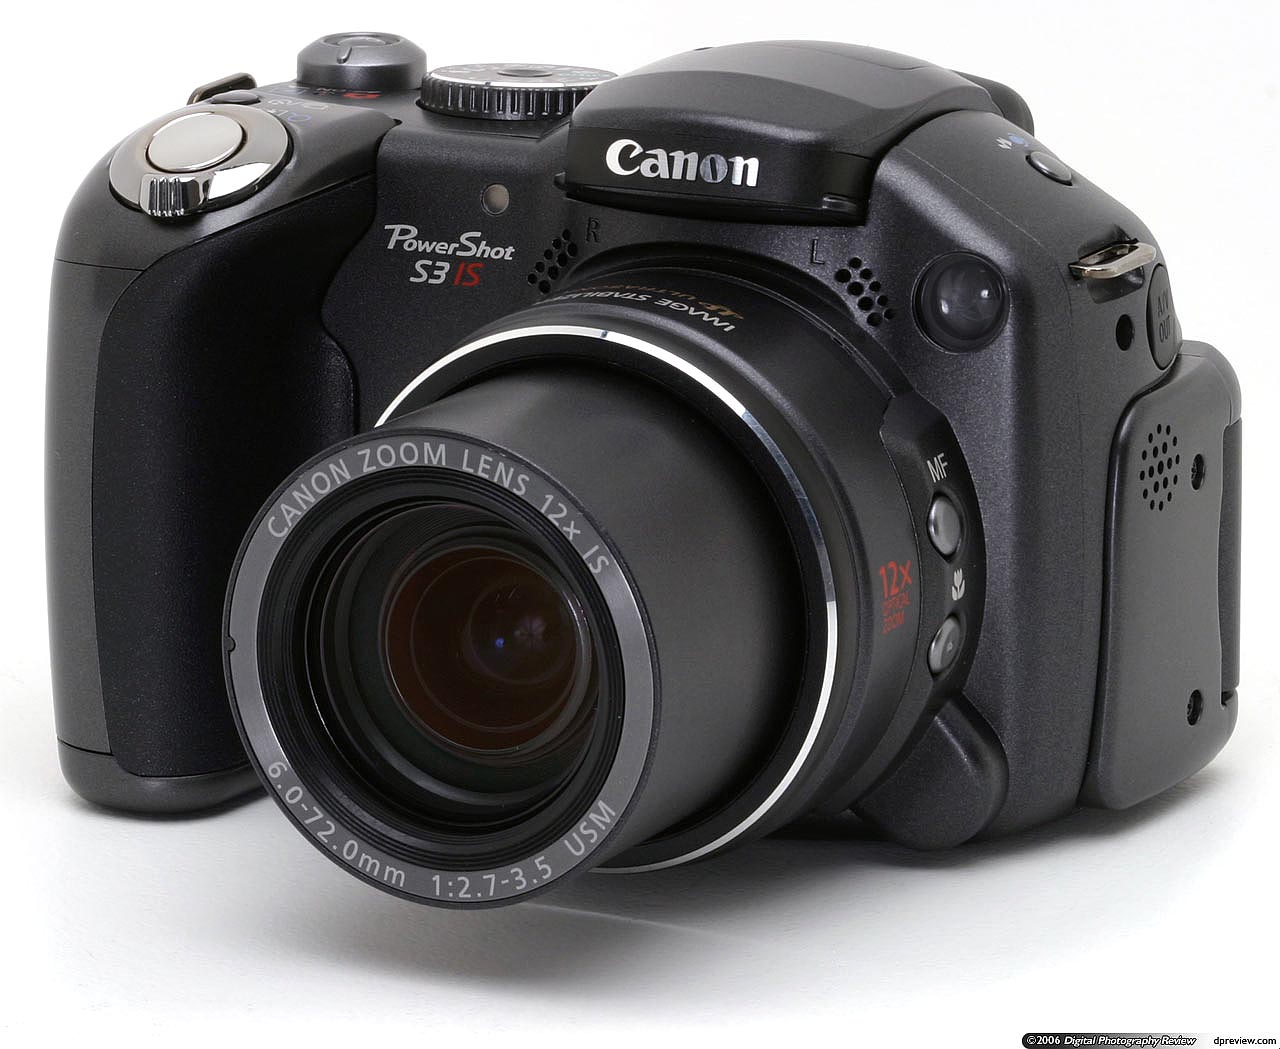 Canon PowerShot S3 IS Review: Digital Photography Review